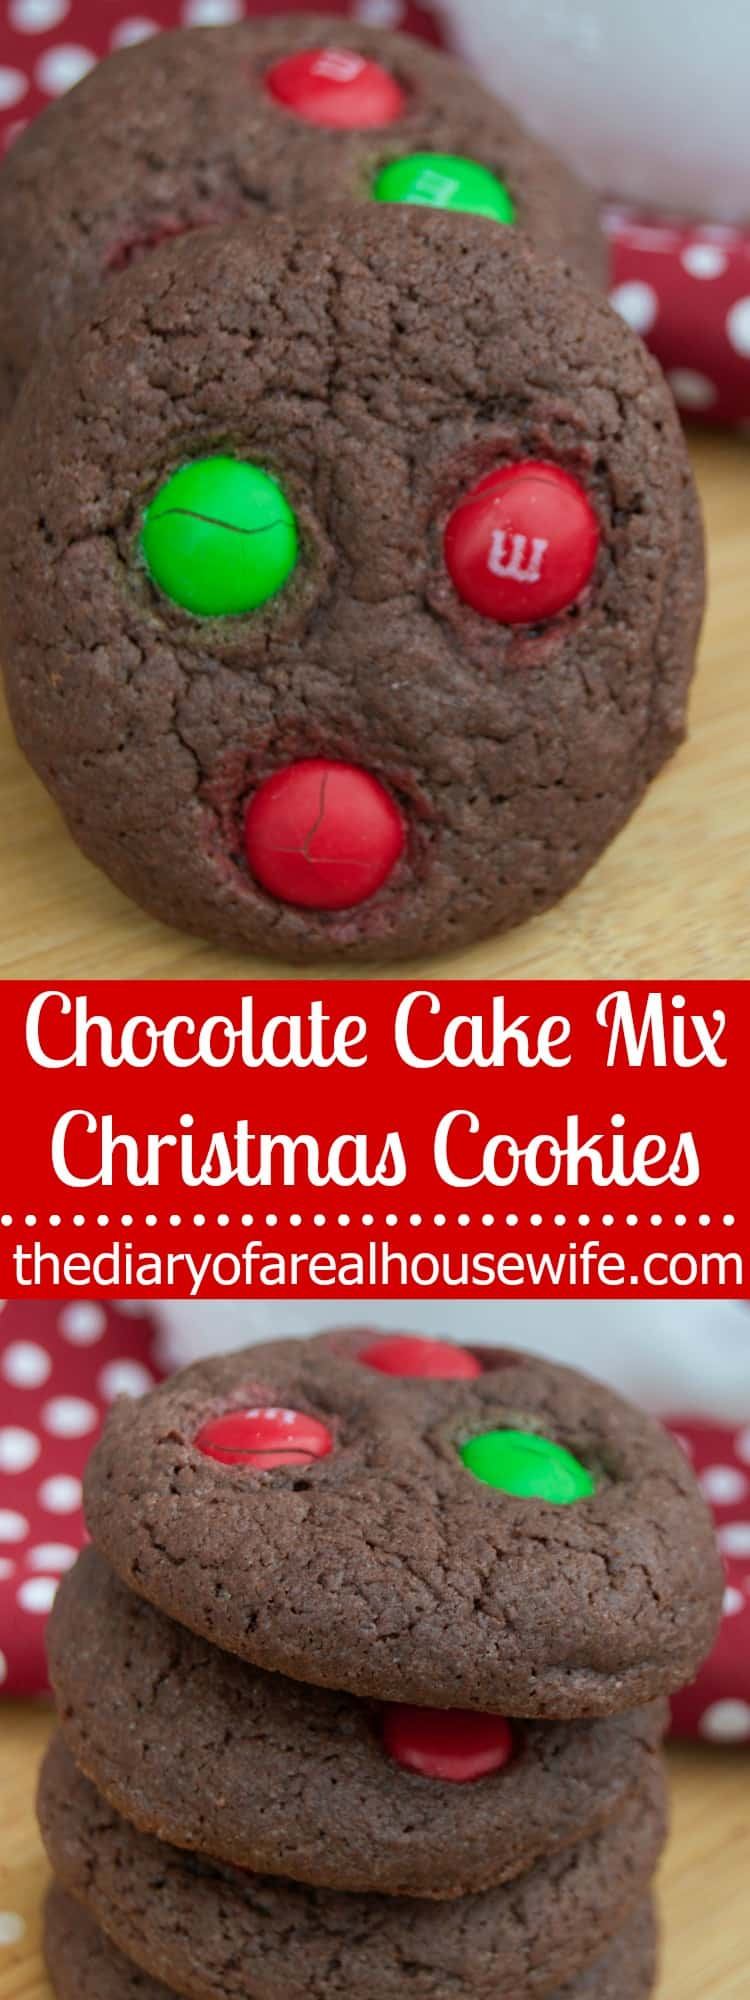 Chocolate Cake Mix Christmas Cookies